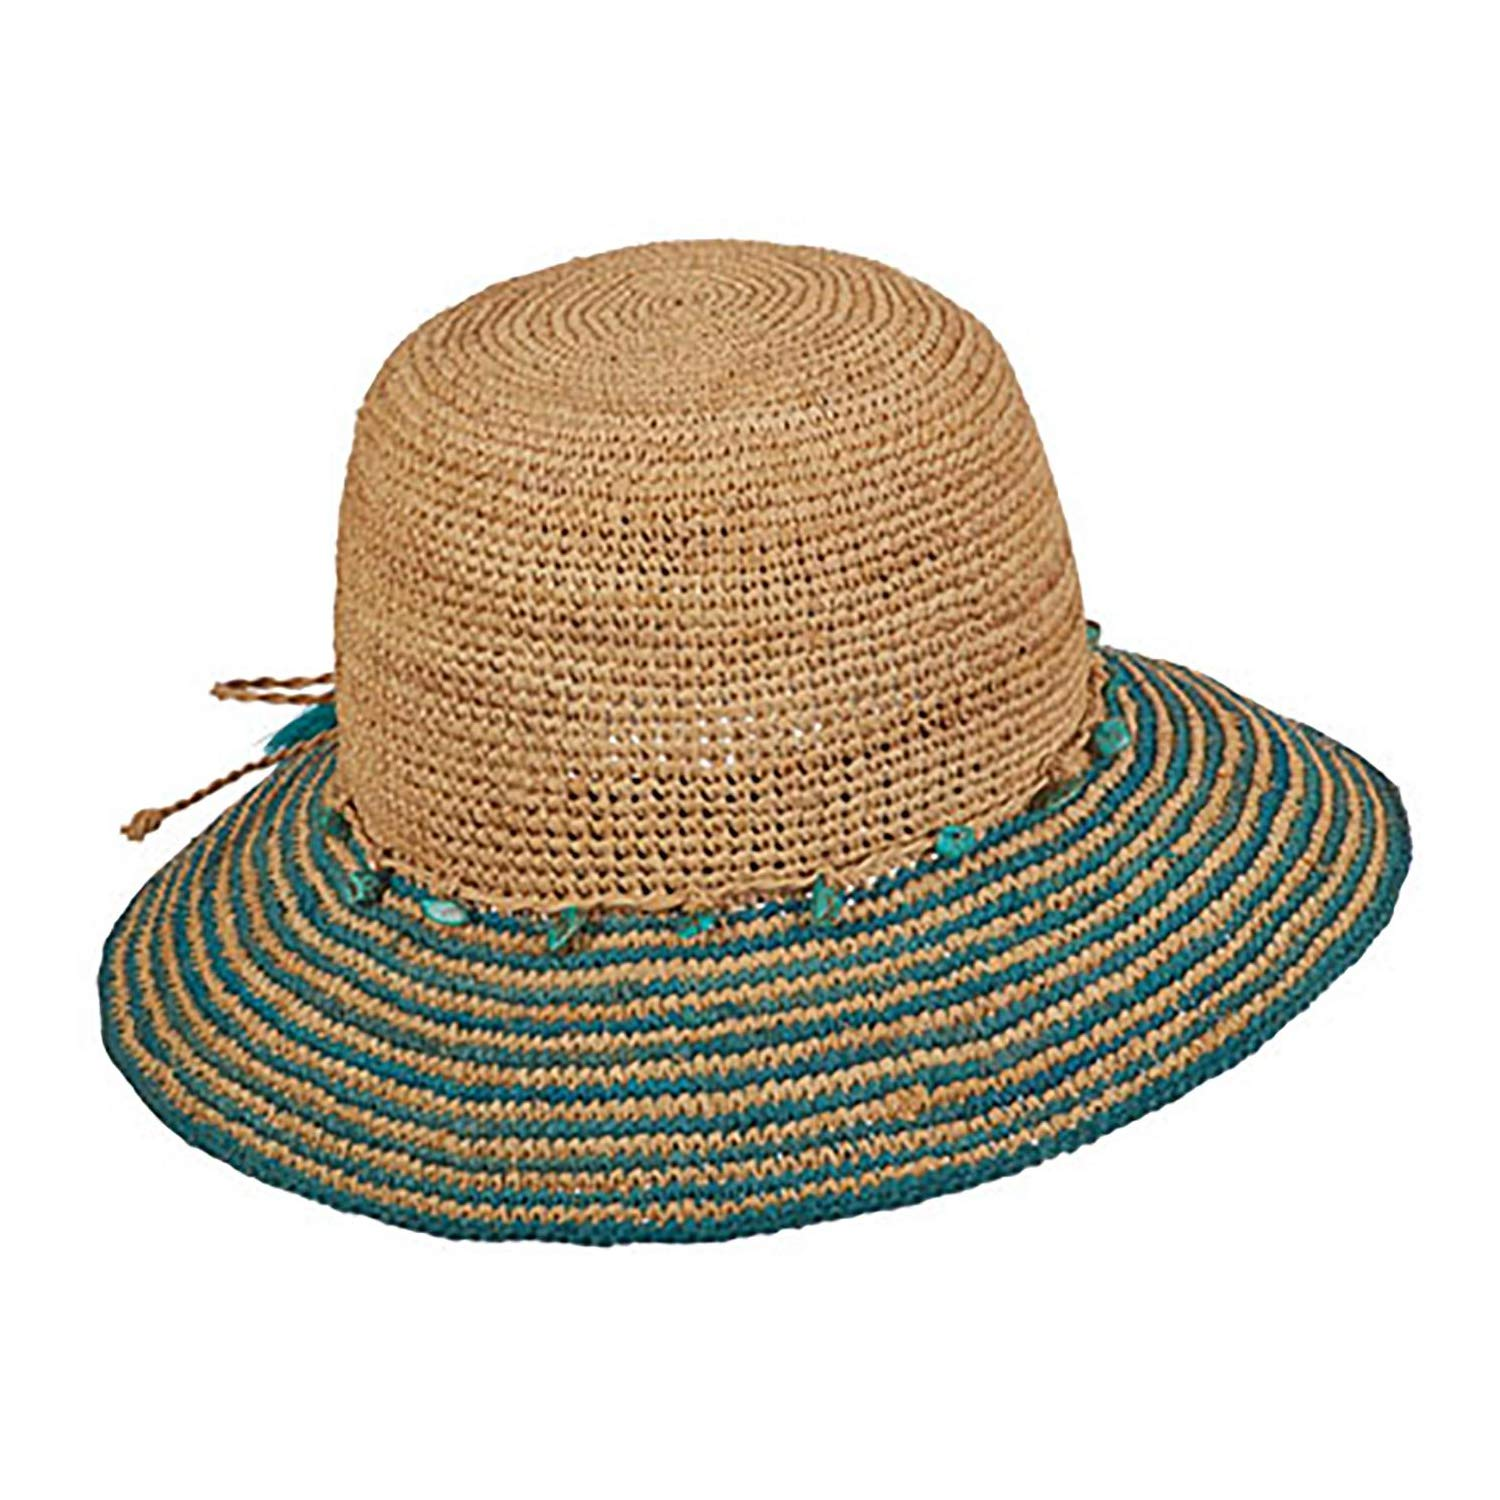 Tommy Bahama Womens Raffia Bucket Hat with Turquoise Trim (Turquoise, One Size)